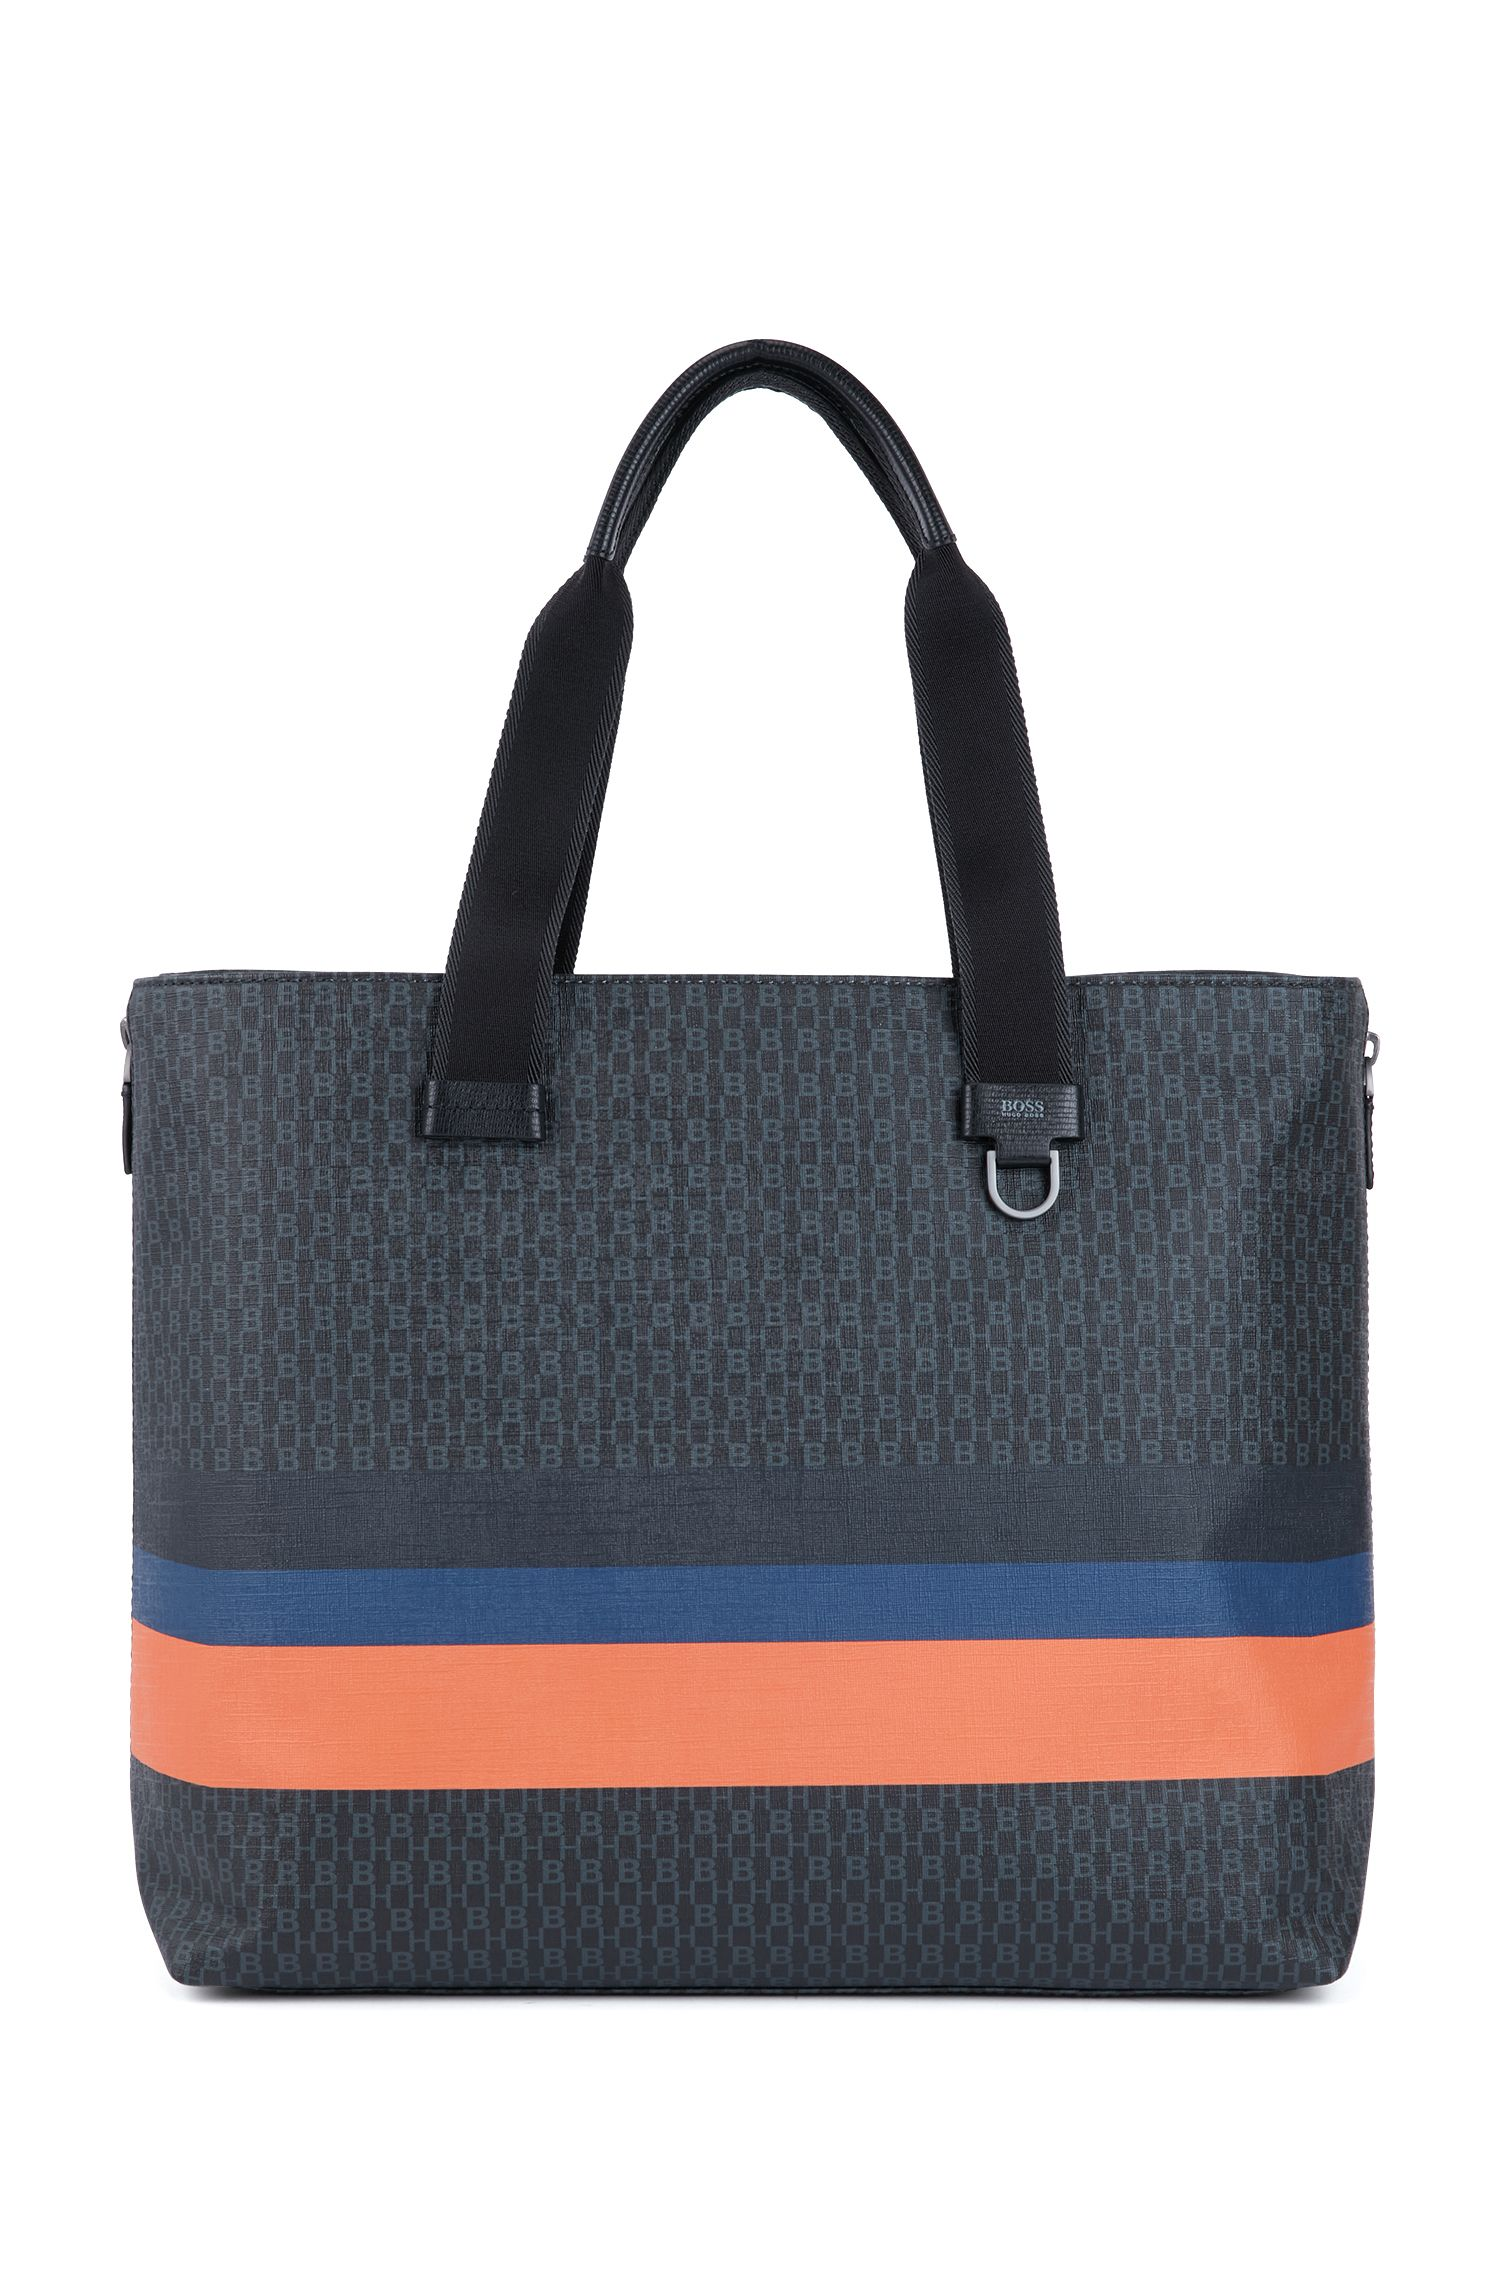 Tote bag with monogram print and colorblock stripes, Black